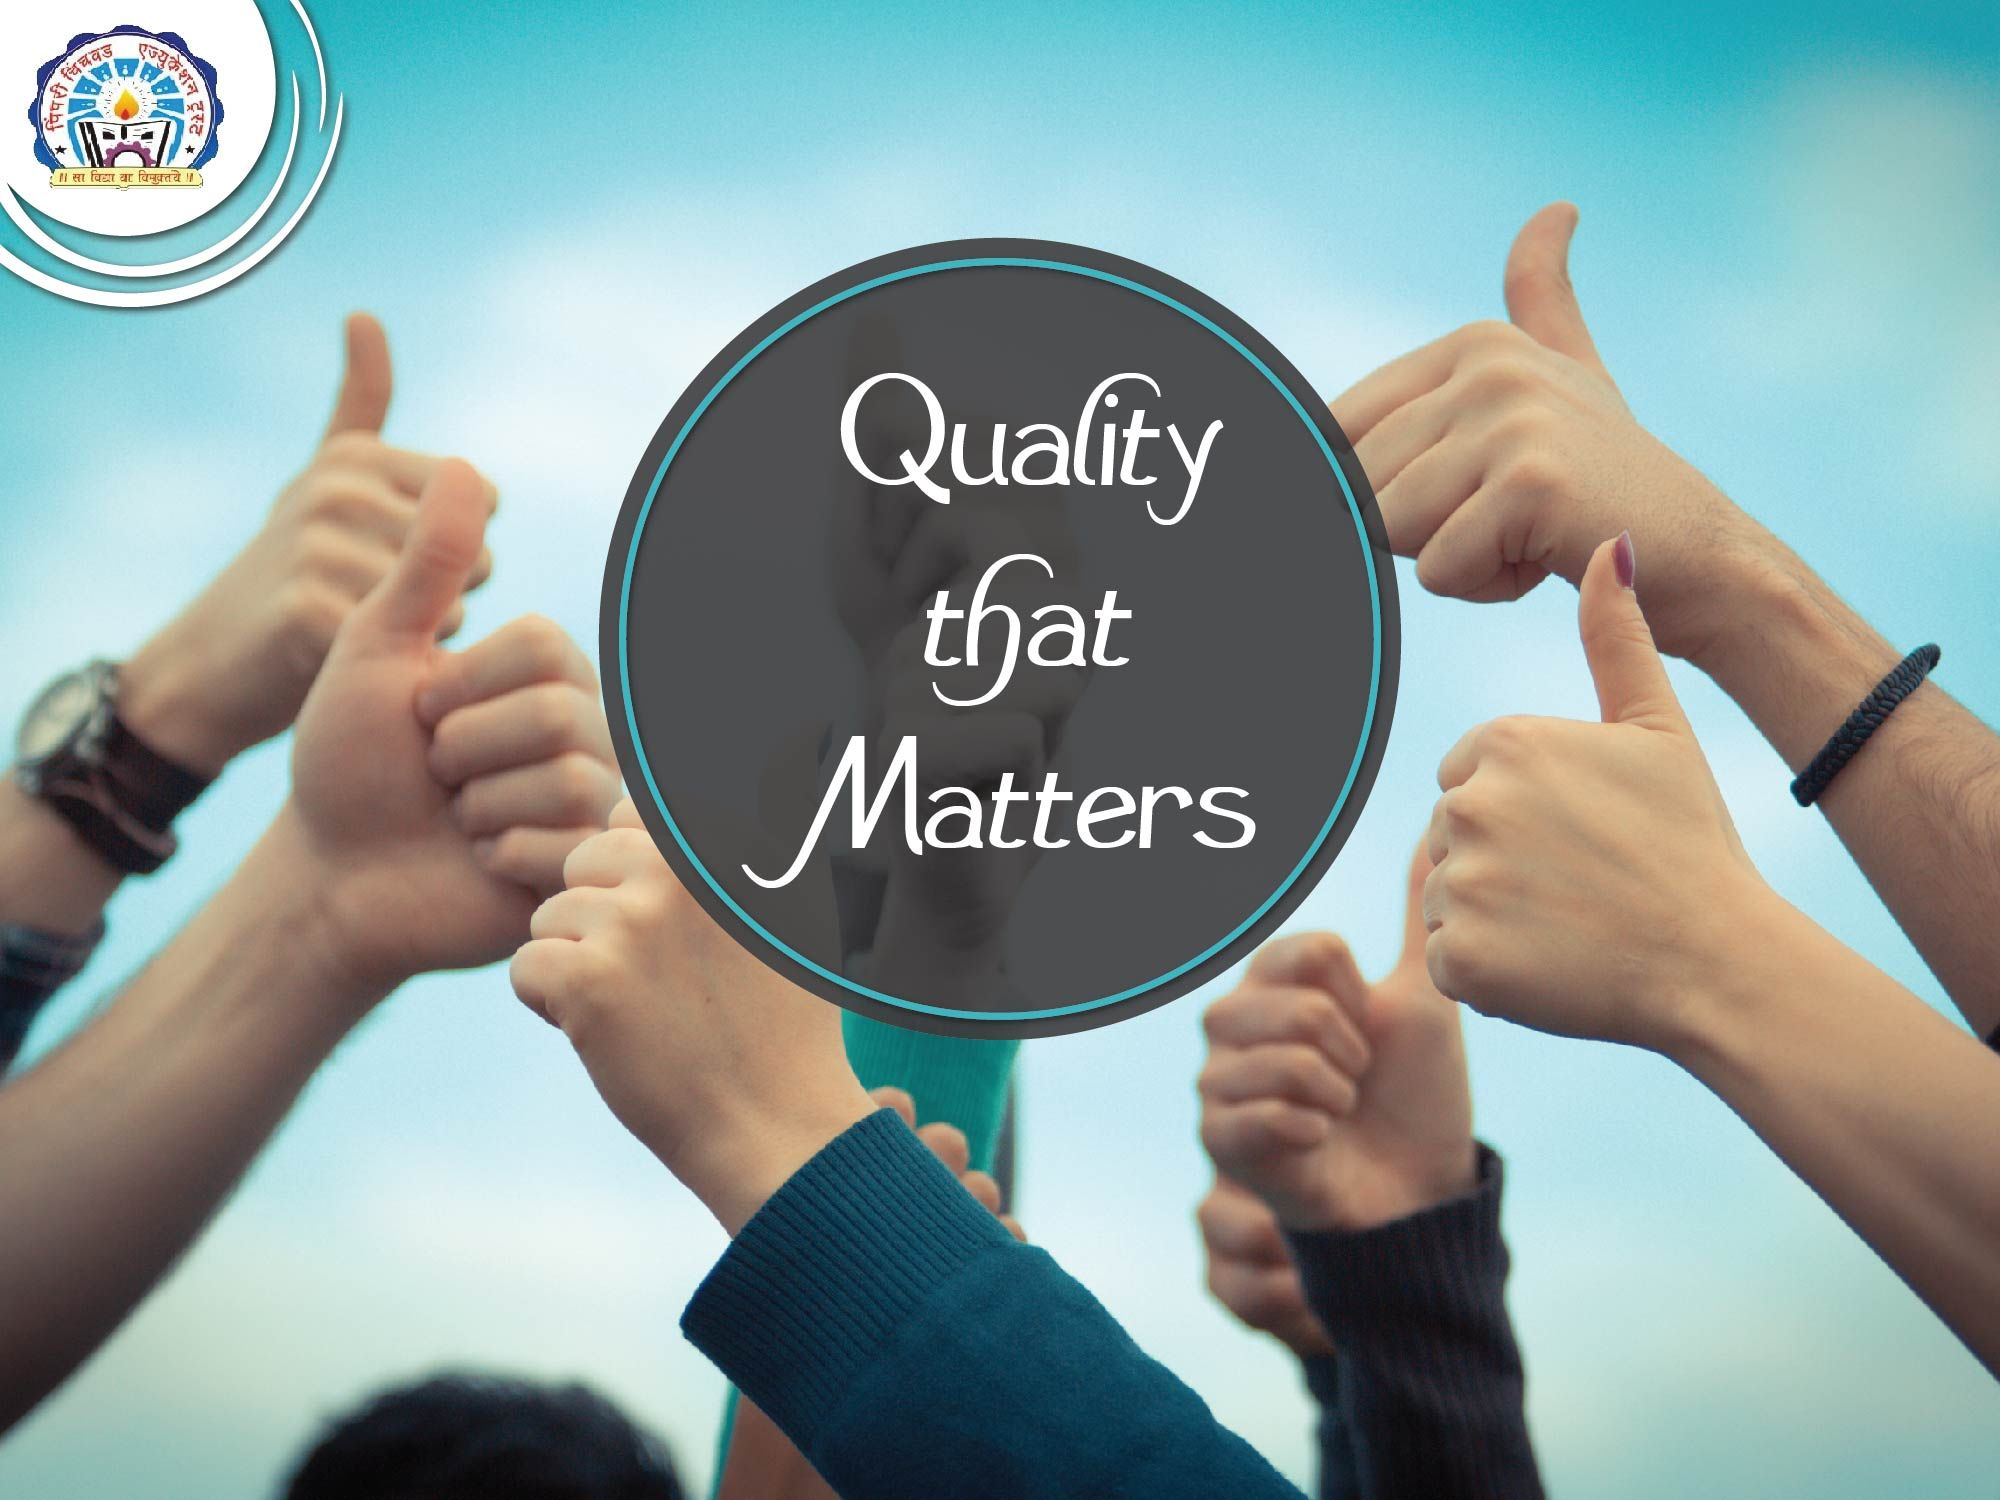 Our dedicated faculty strives to provide quality